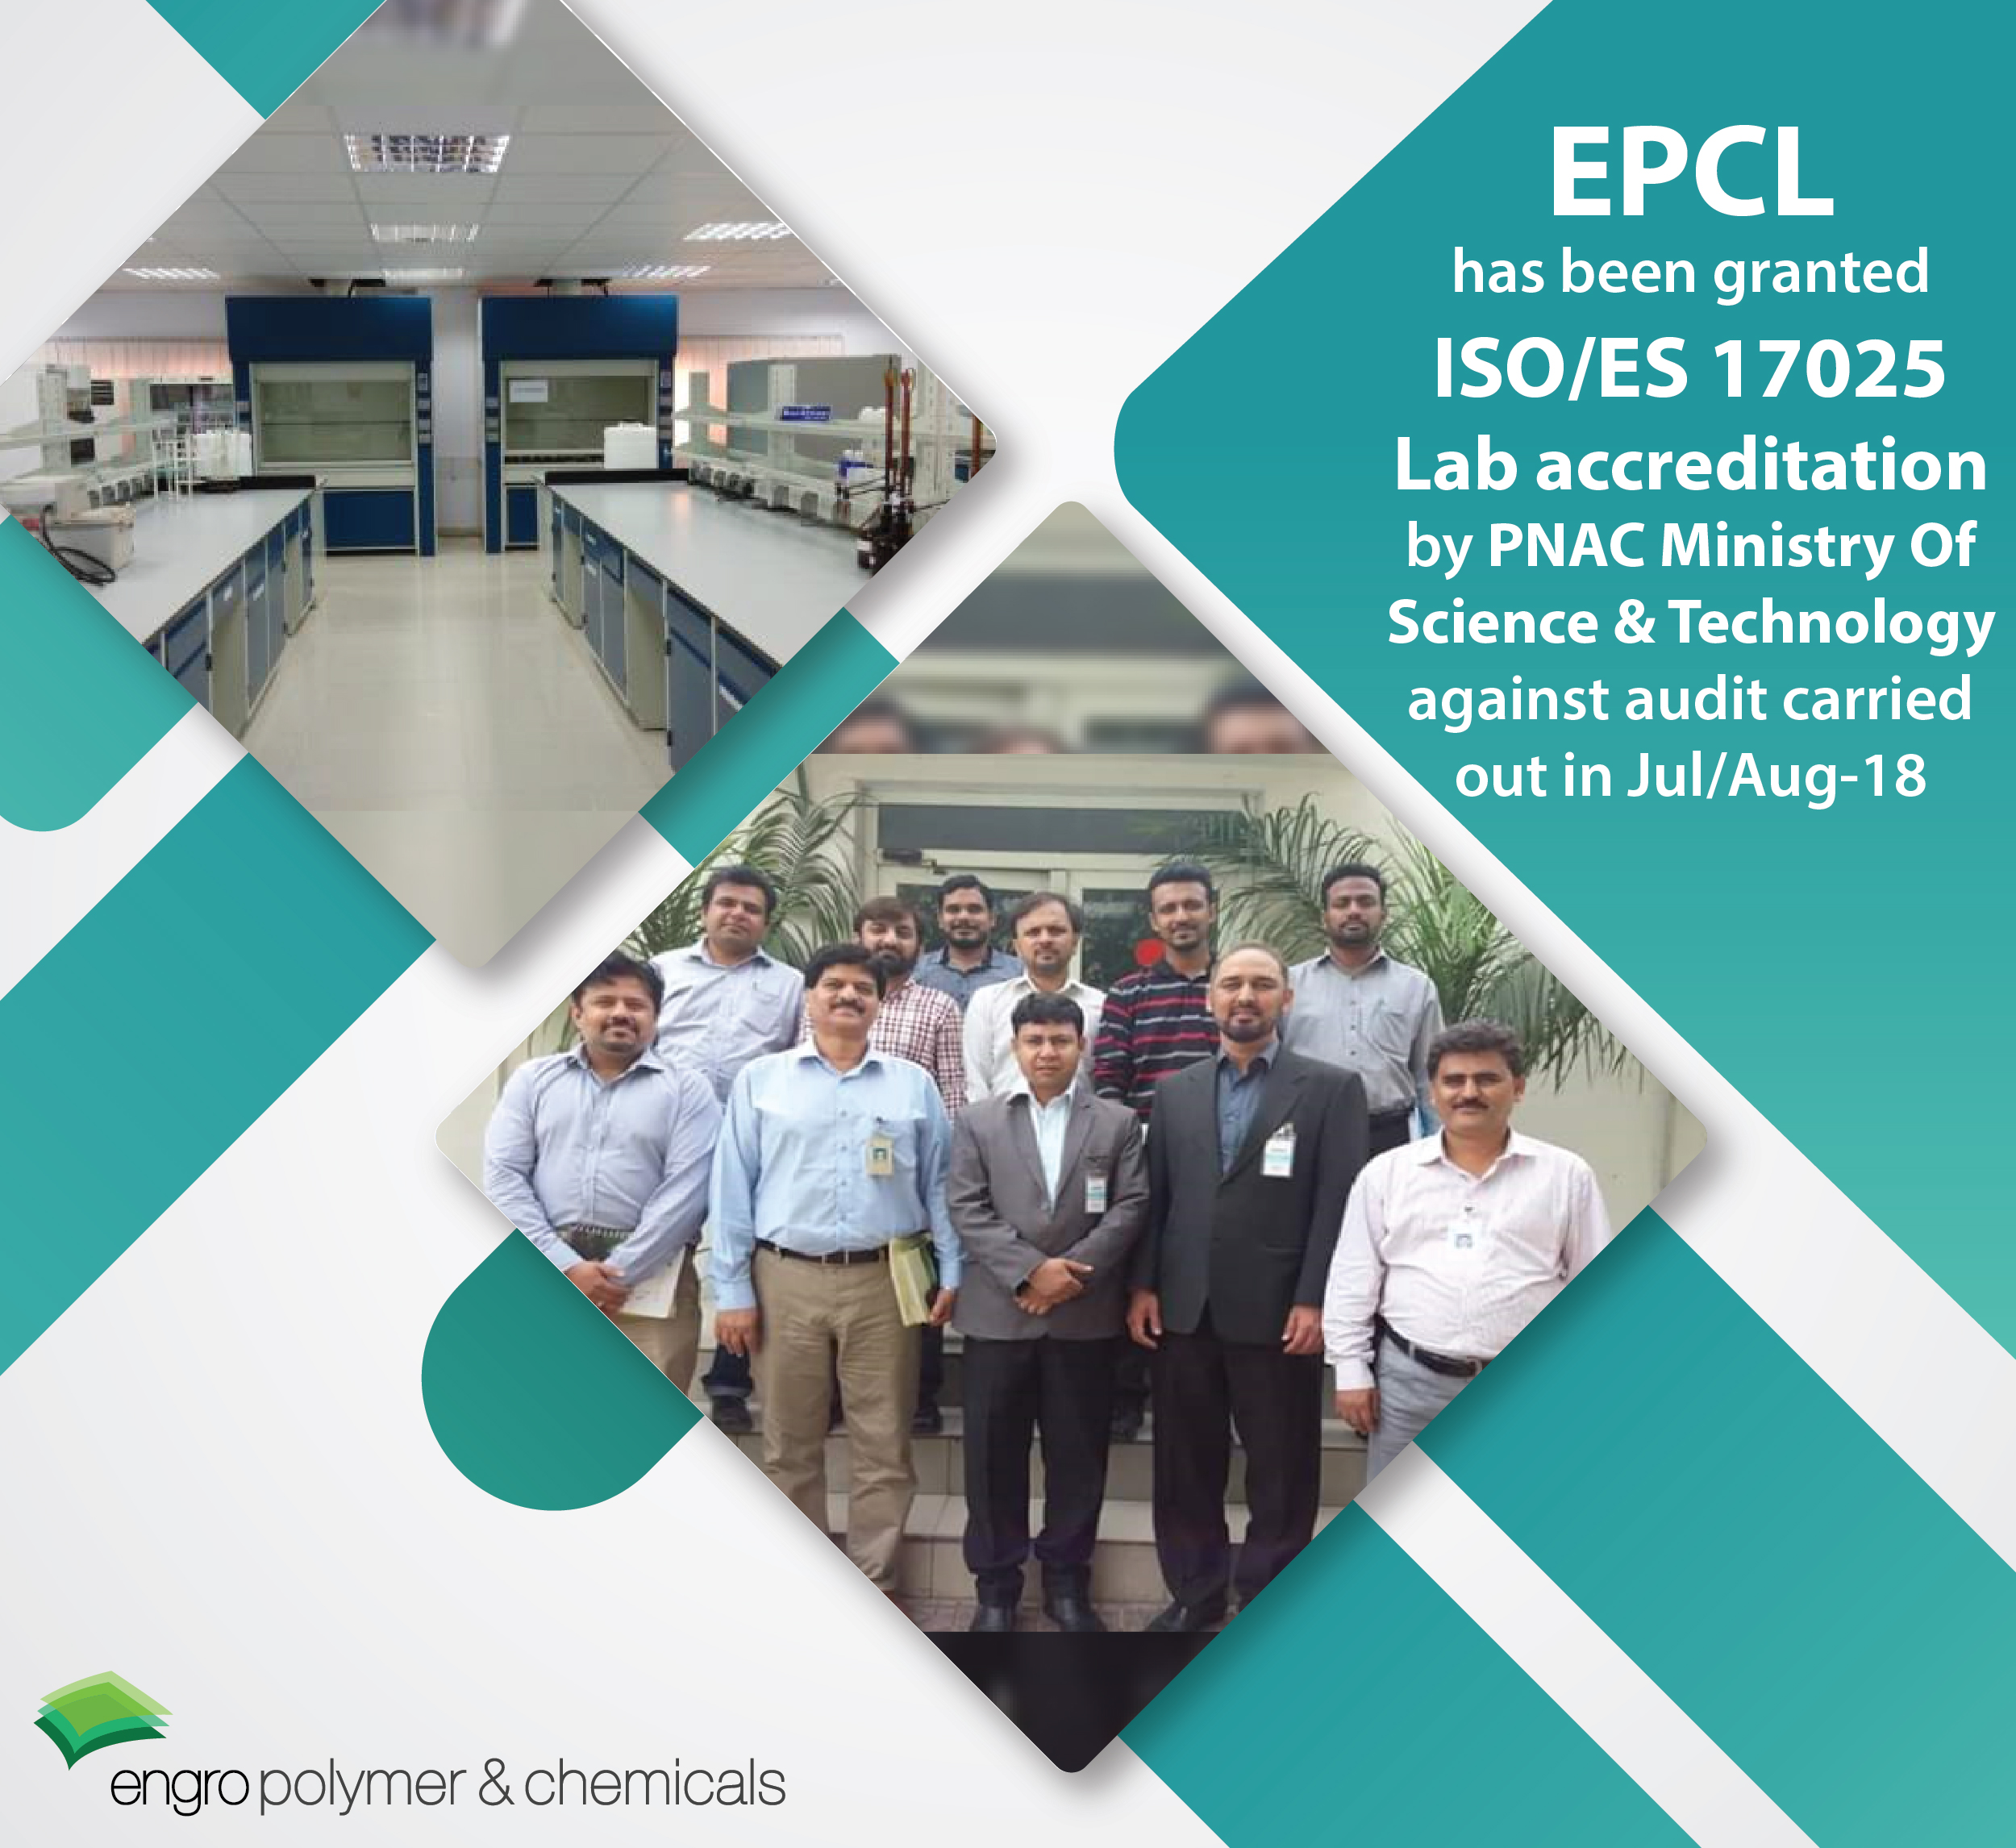 EPCL granted ISO/ES 17025 Lab accreditation